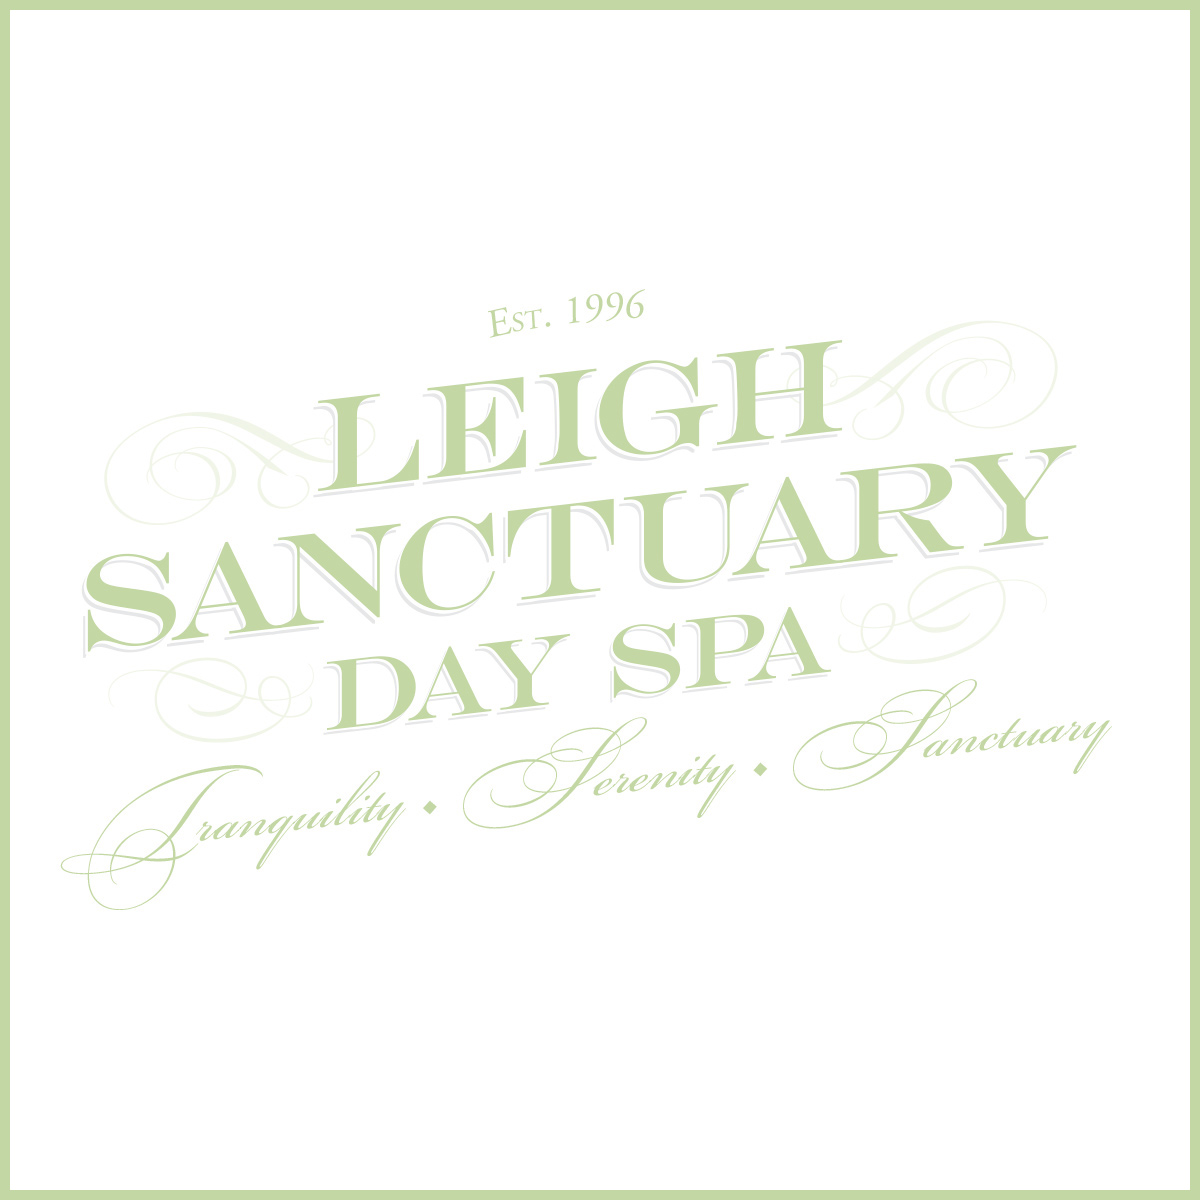 Leigh Sanctuary  Day Spa